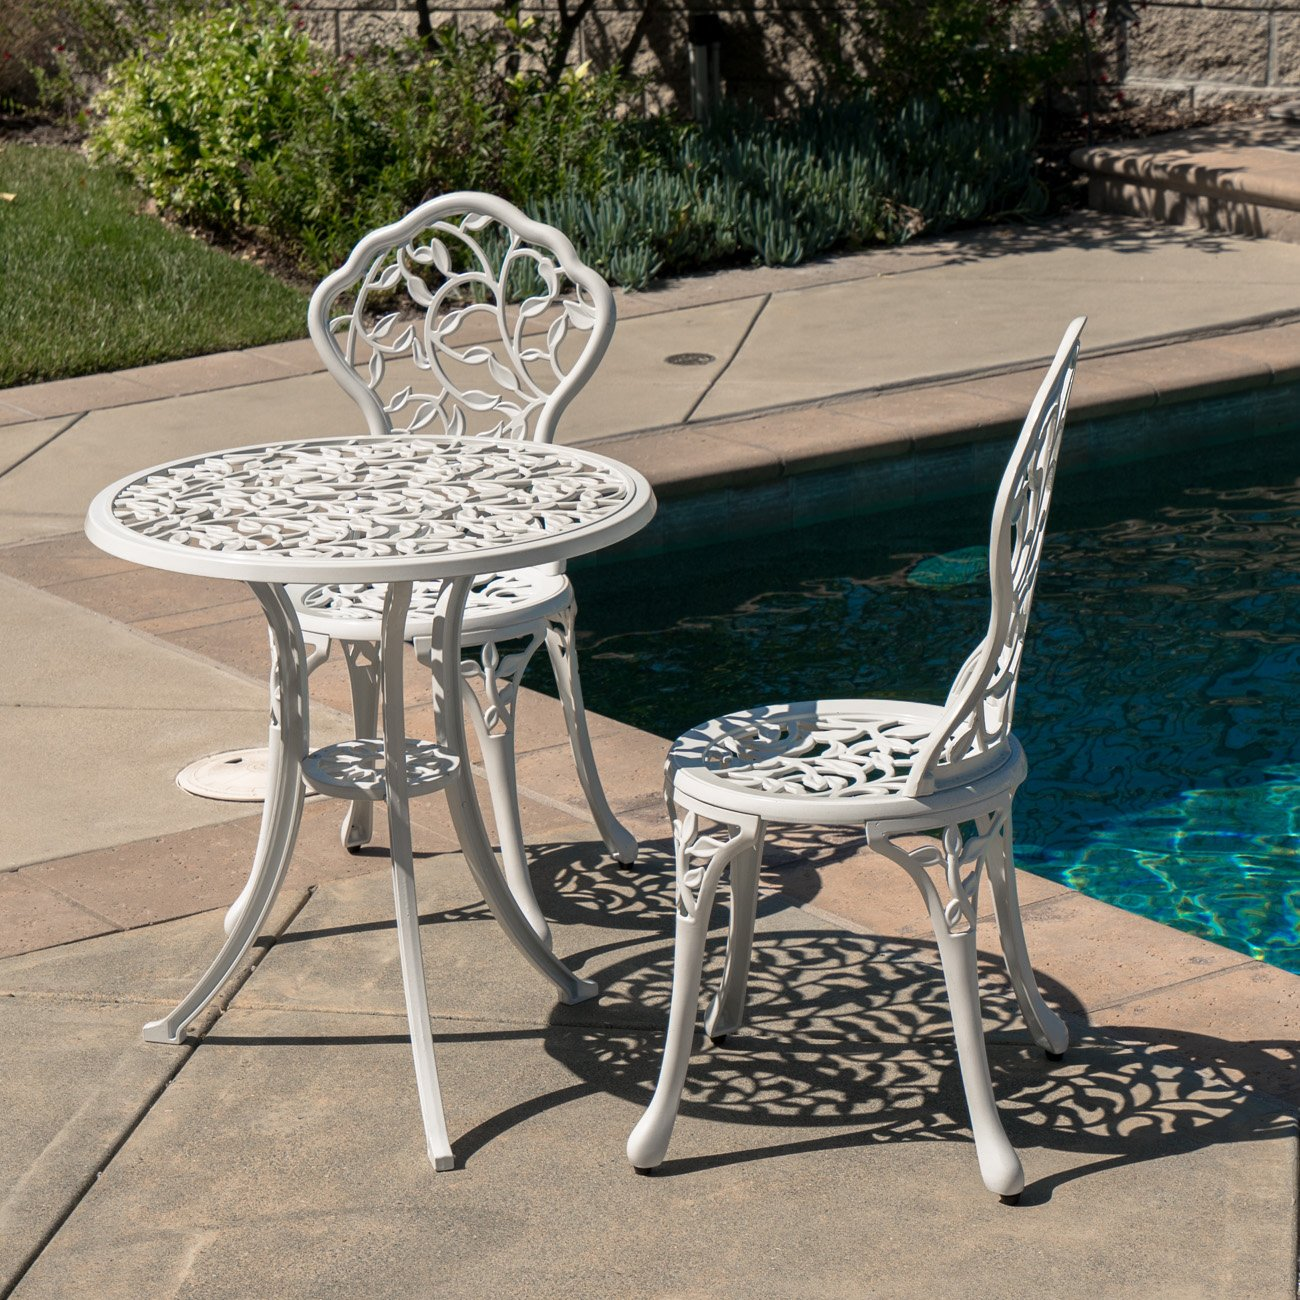 Belleze Outdoor Patio Furniture Leaf Design Bistro Set in Antique White 2